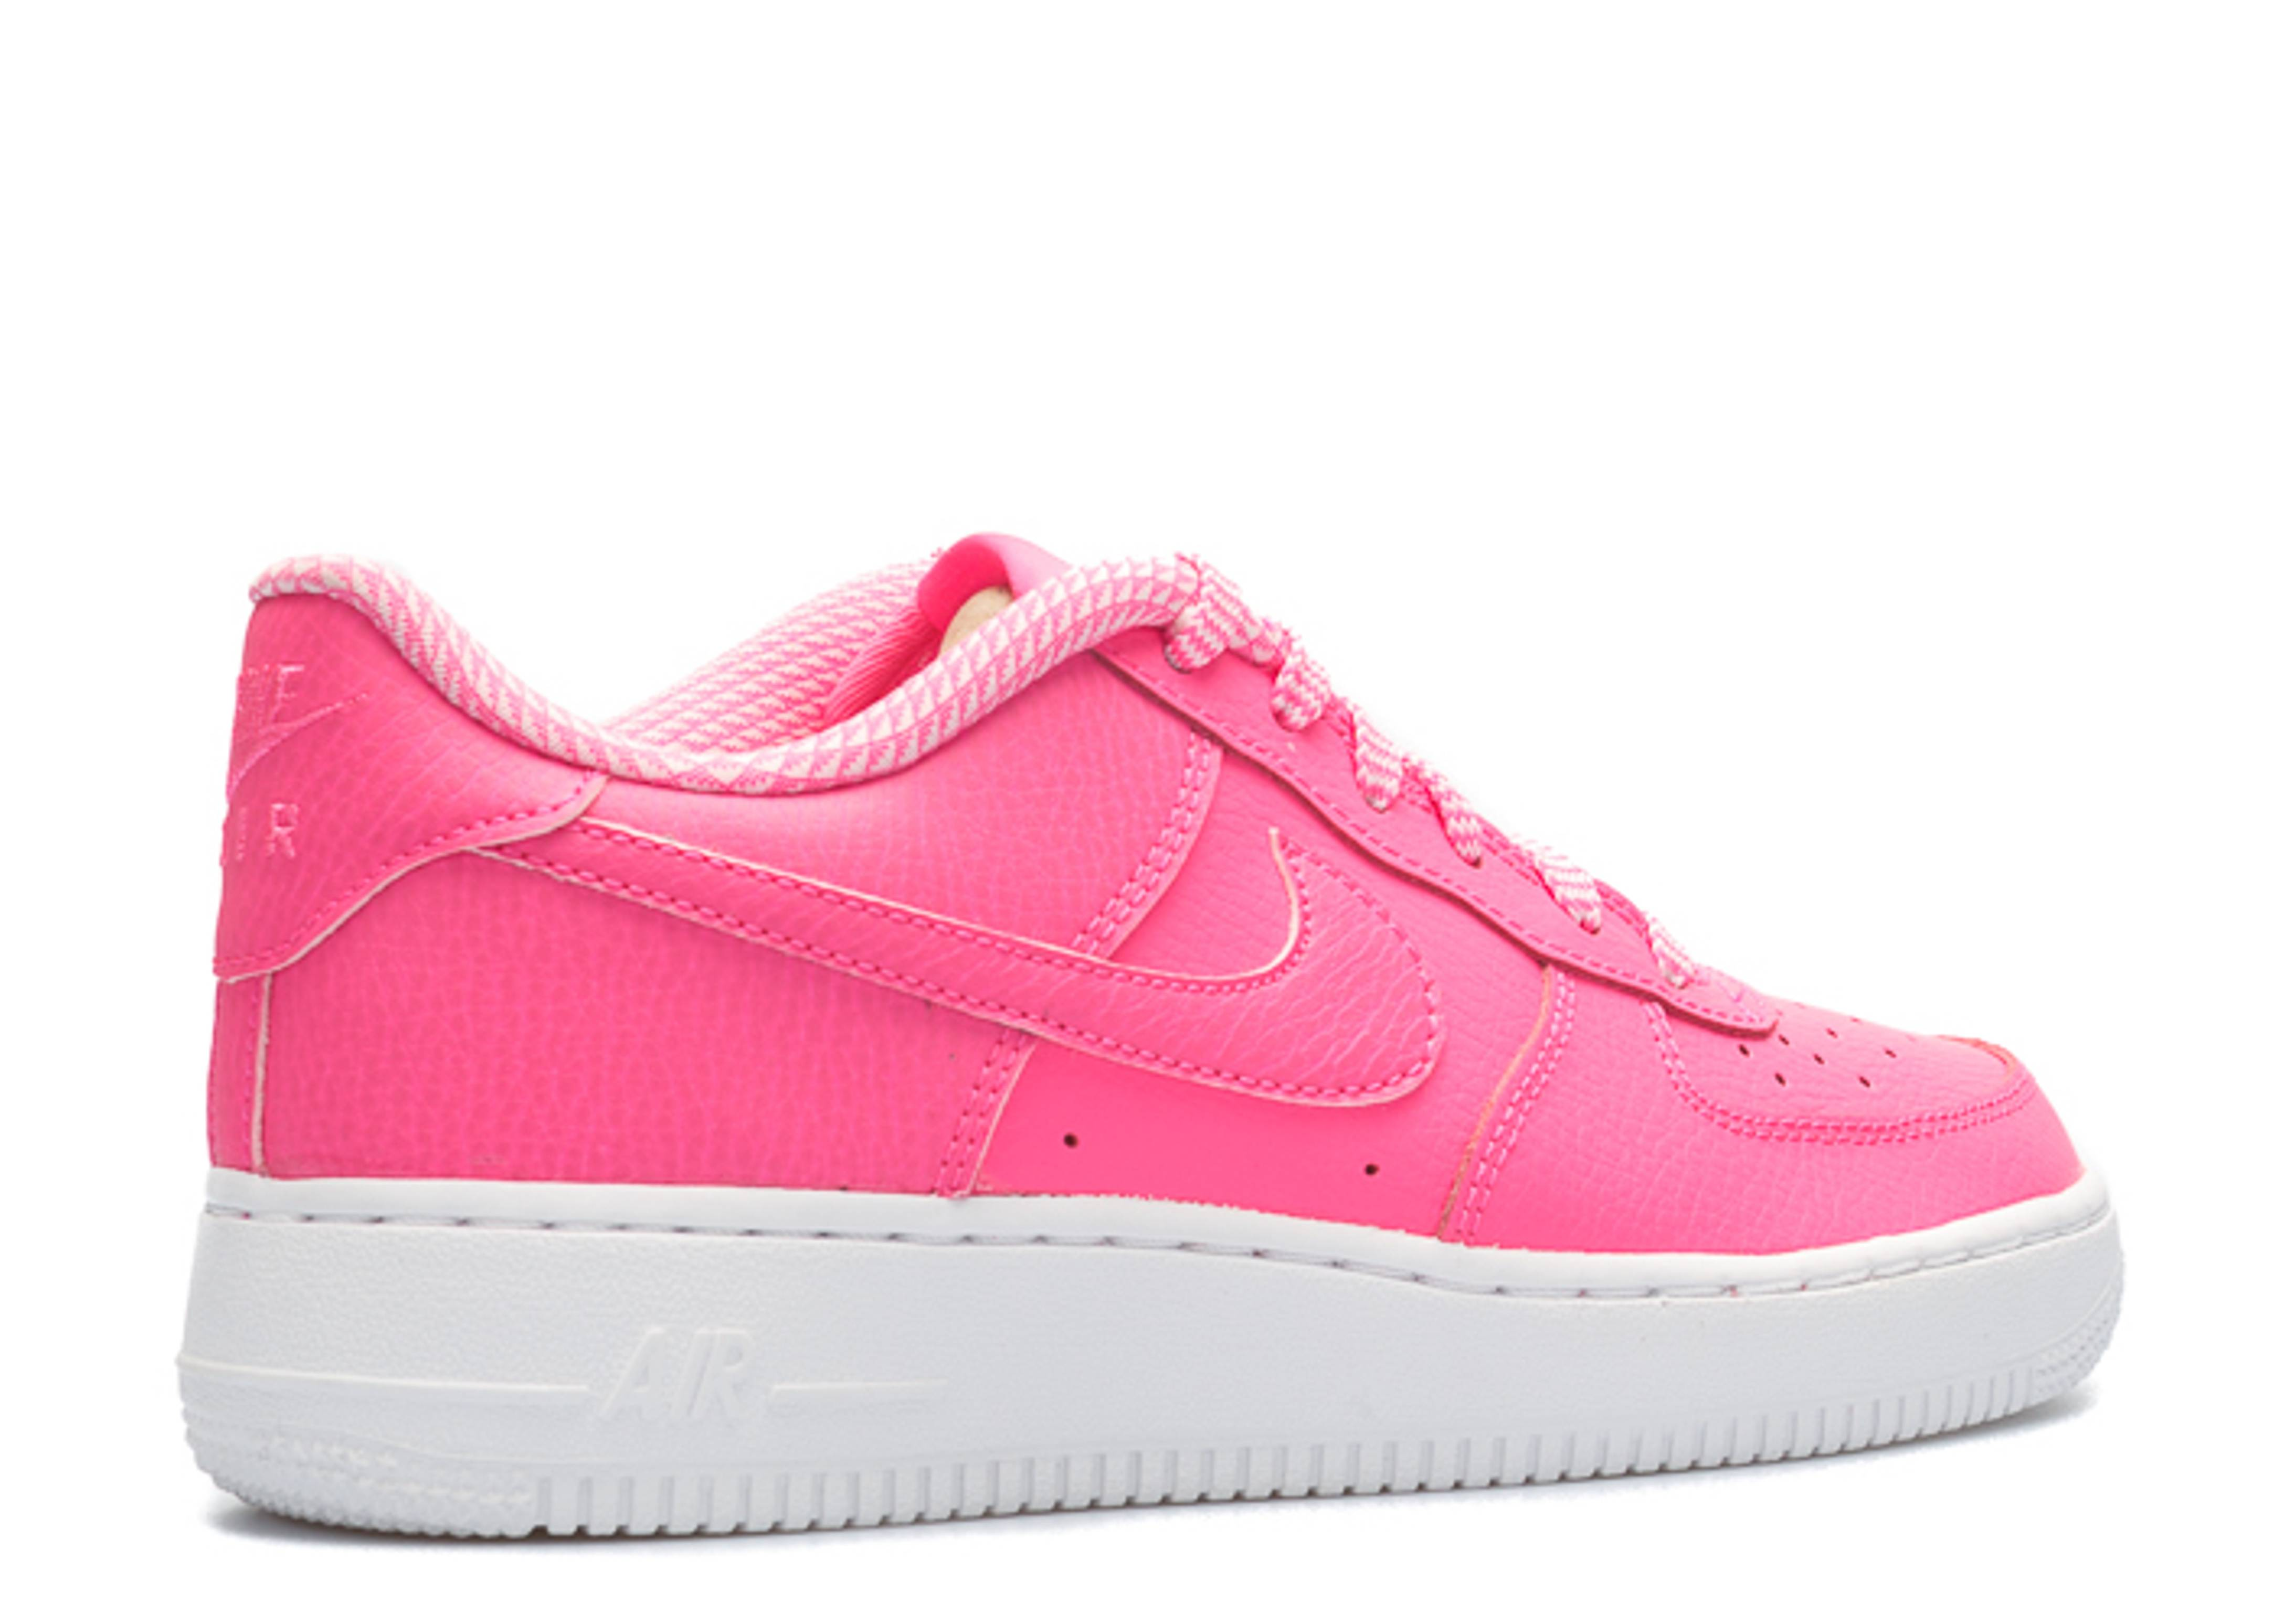 air force 1 gs pink pow pink pow white. Black Bedroom Furniture Sets. Home Design Ideas